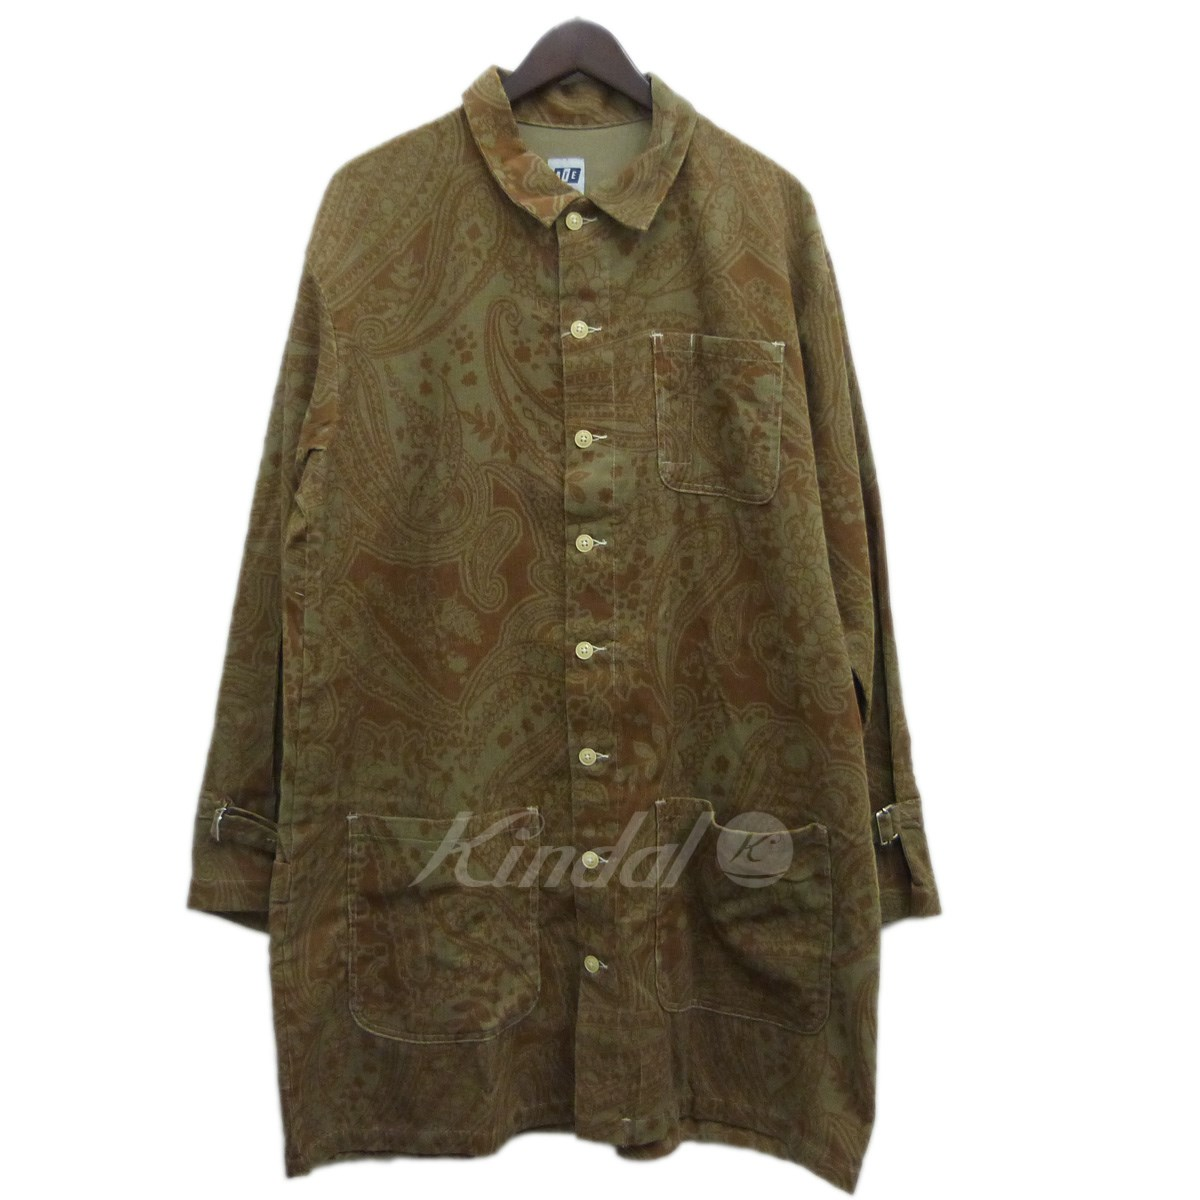 【中古】AiE(Arts in Education) 18SS「Strap Long Shirt-Printed Floral Corduroy」 【送料無料】 【132495】 【KIND1550】